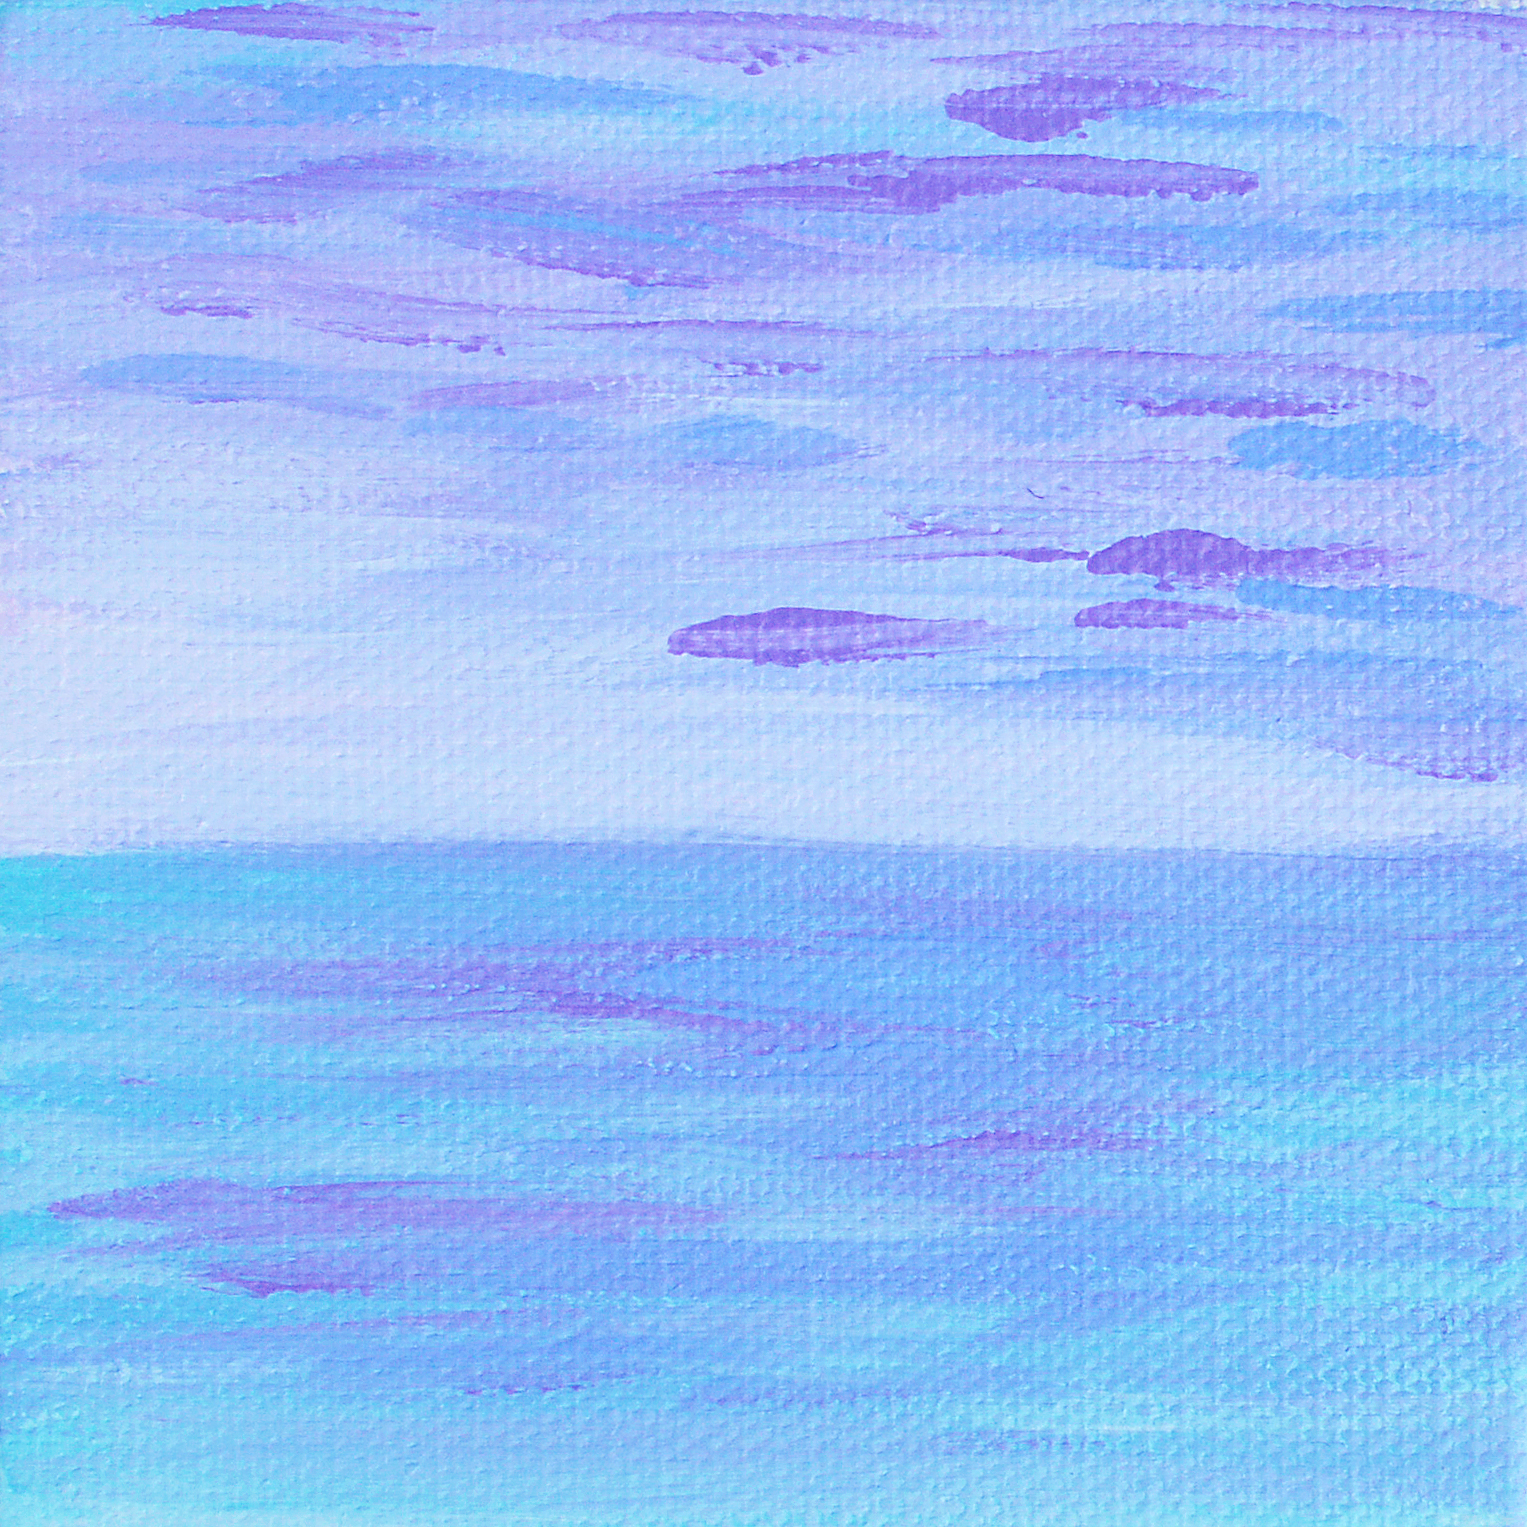 Lilac Seascape | Original Acrylic Painting by Hello Monday Design | Cropped